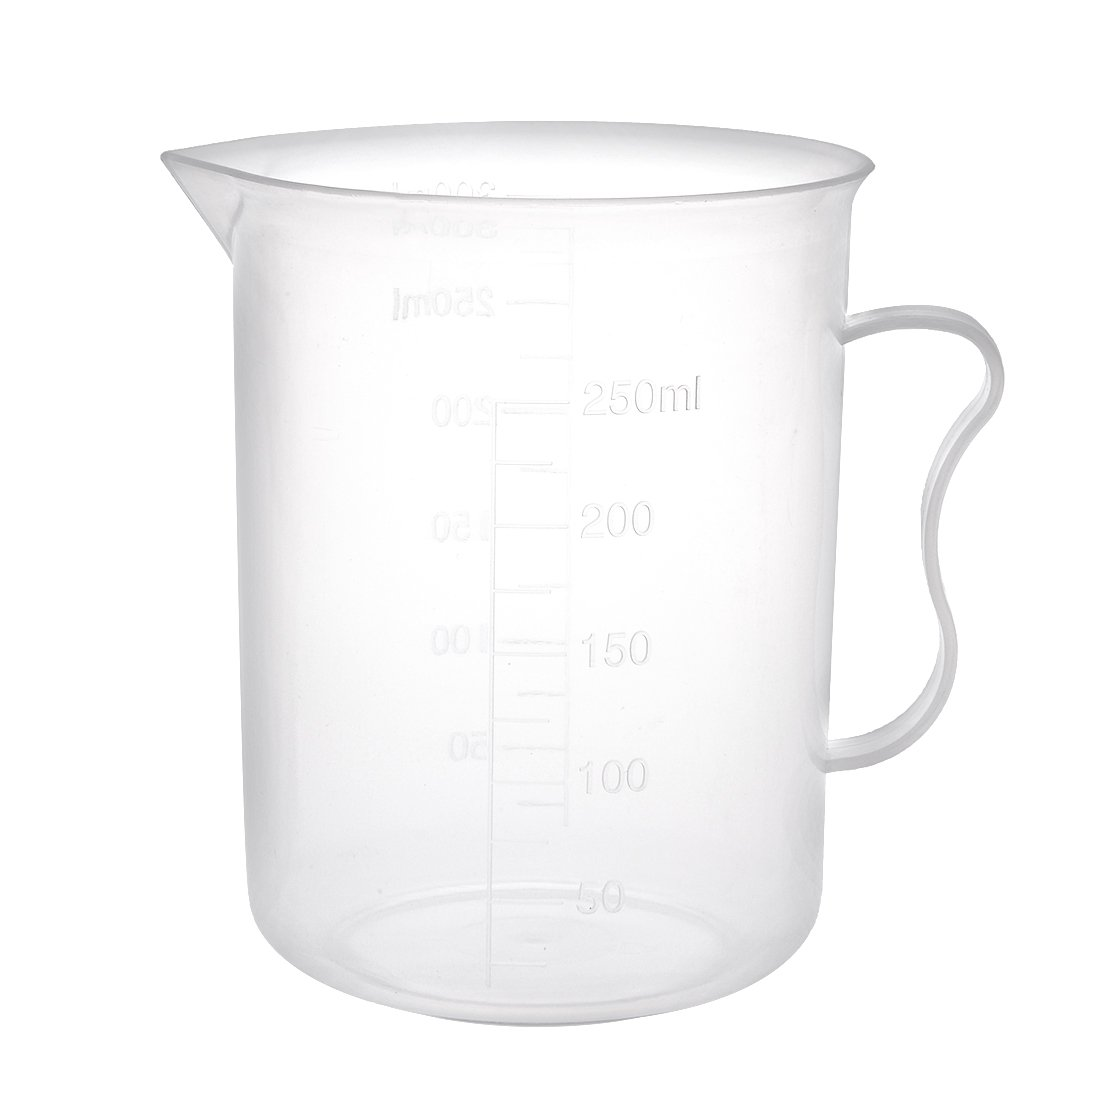 sourcingmap Laboratory Clear White PP 300ML Measuring Cup Handled Beaker a18031400ux0052